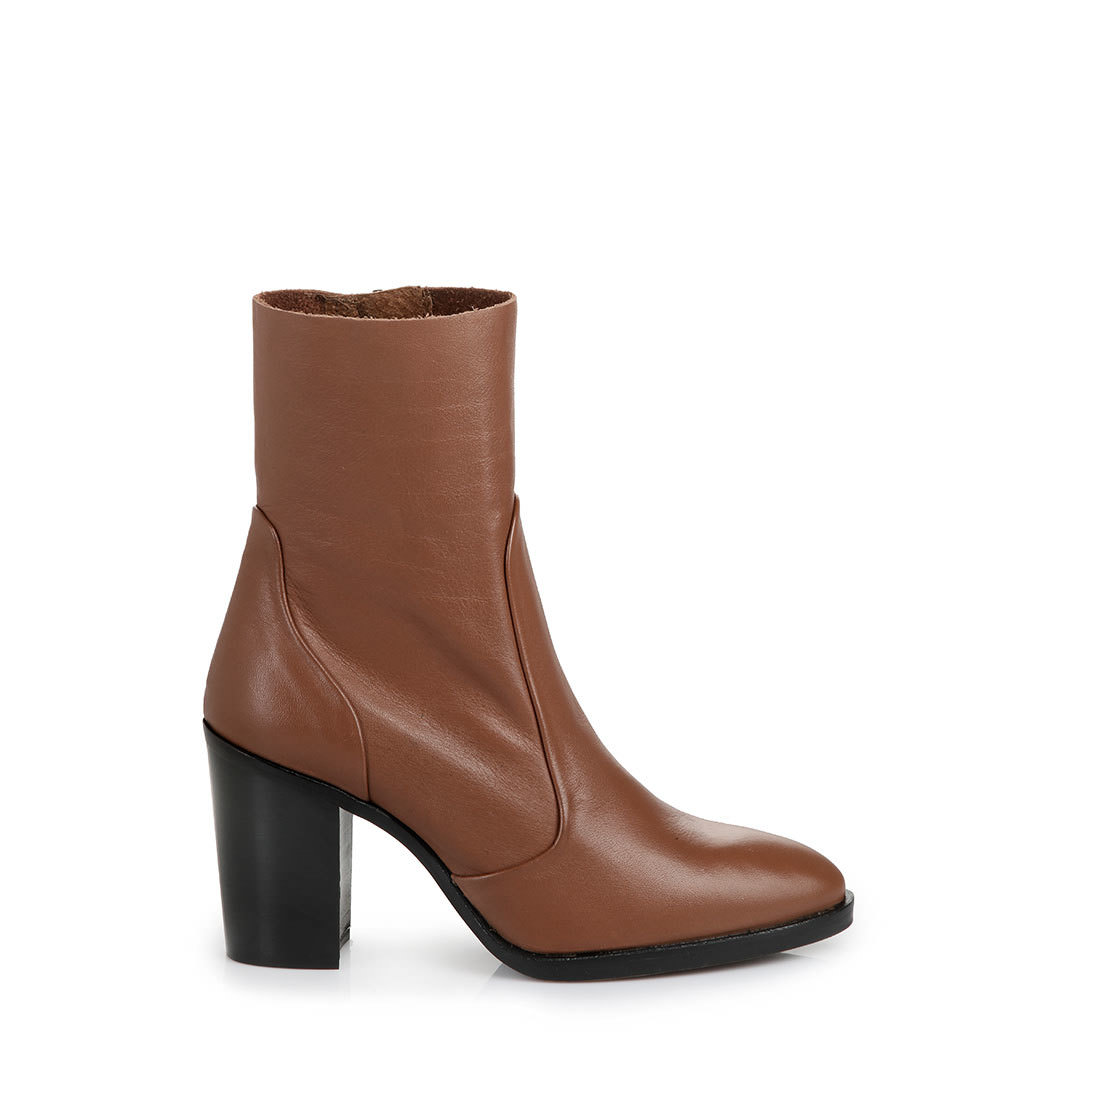 buffalo slim leg ankle boots in brown buy online in buffalo online shop buffalo. Black Bedroom Furniture Sets. Home Design Ideas